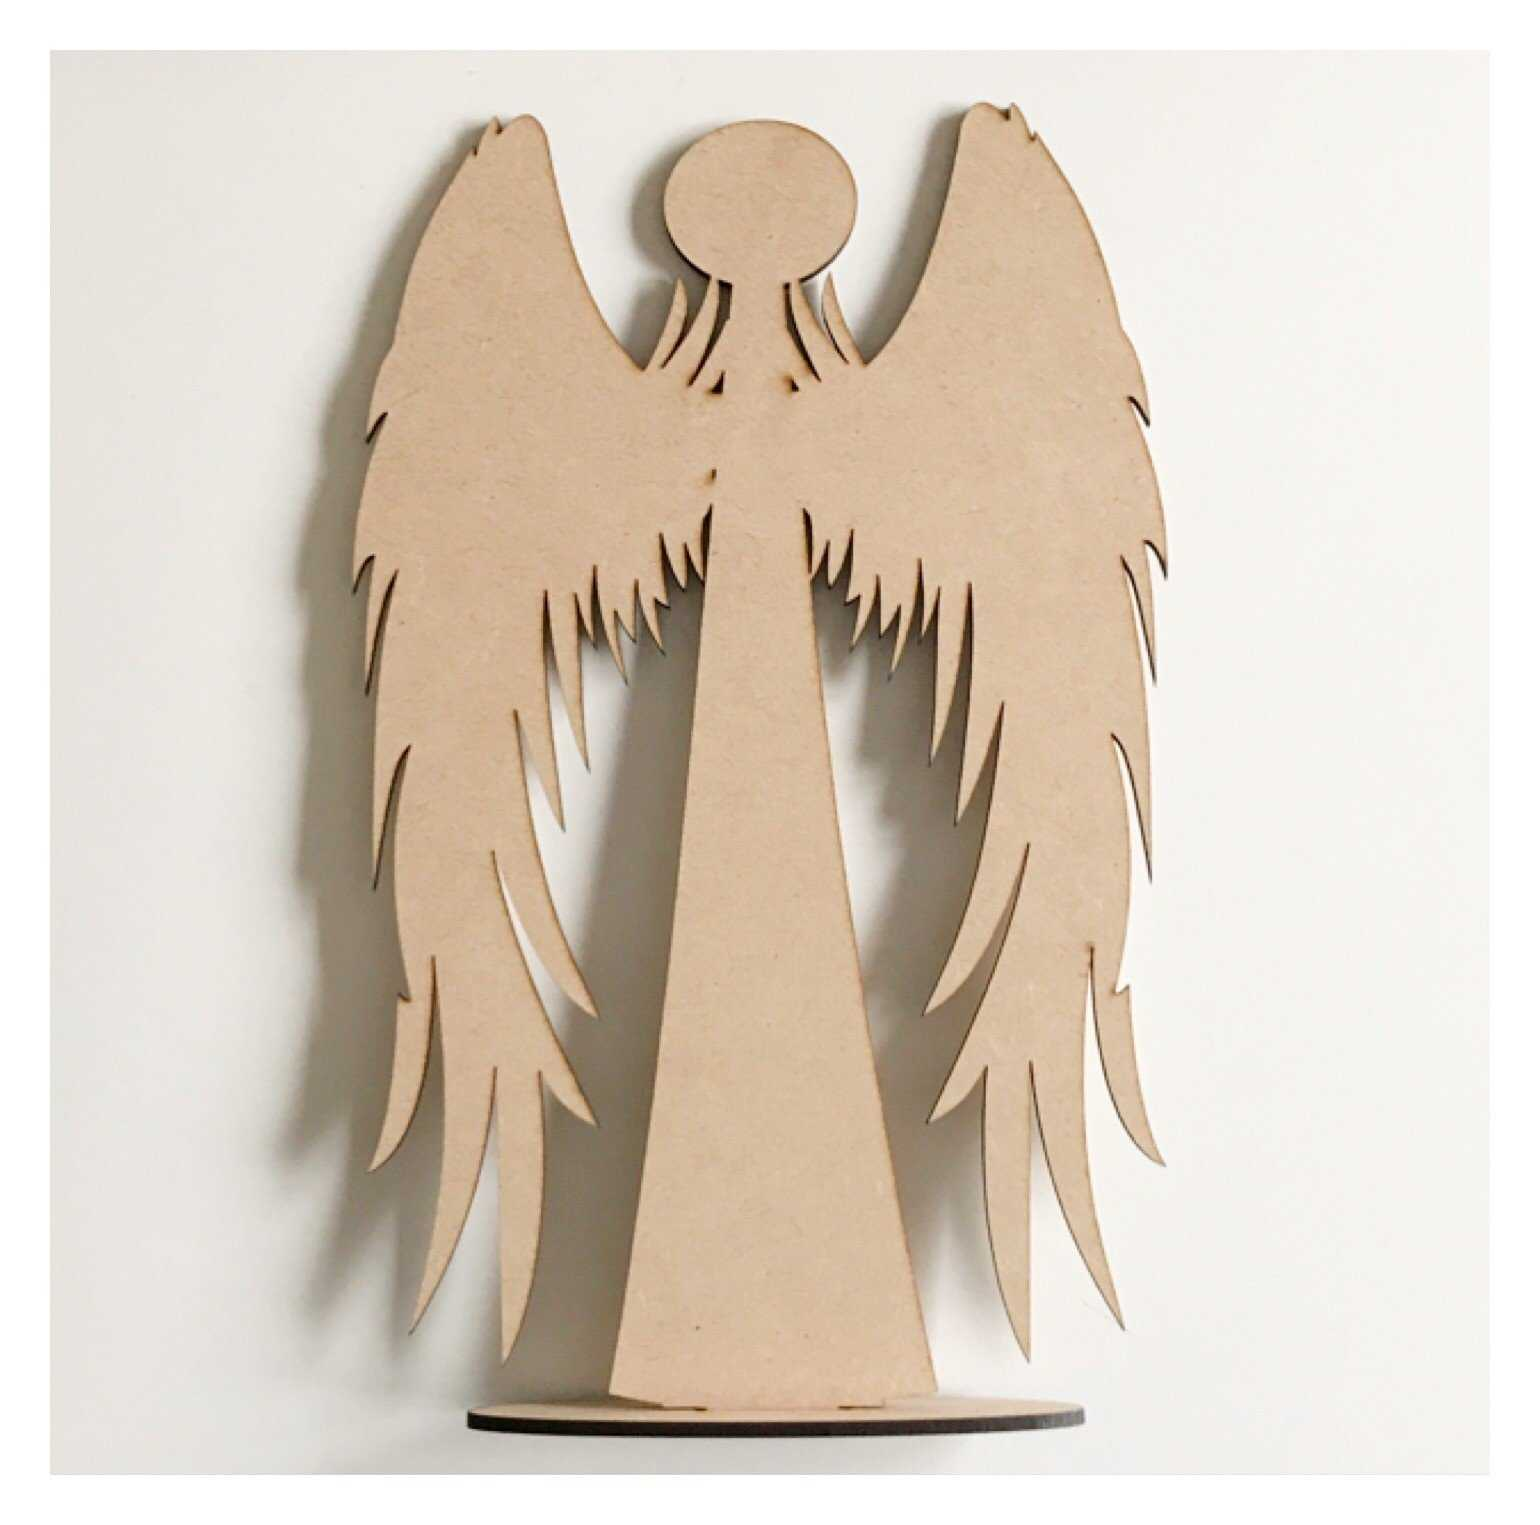 Angel Standing Raw MDF Wooden DIY Craft | The Renmy Store